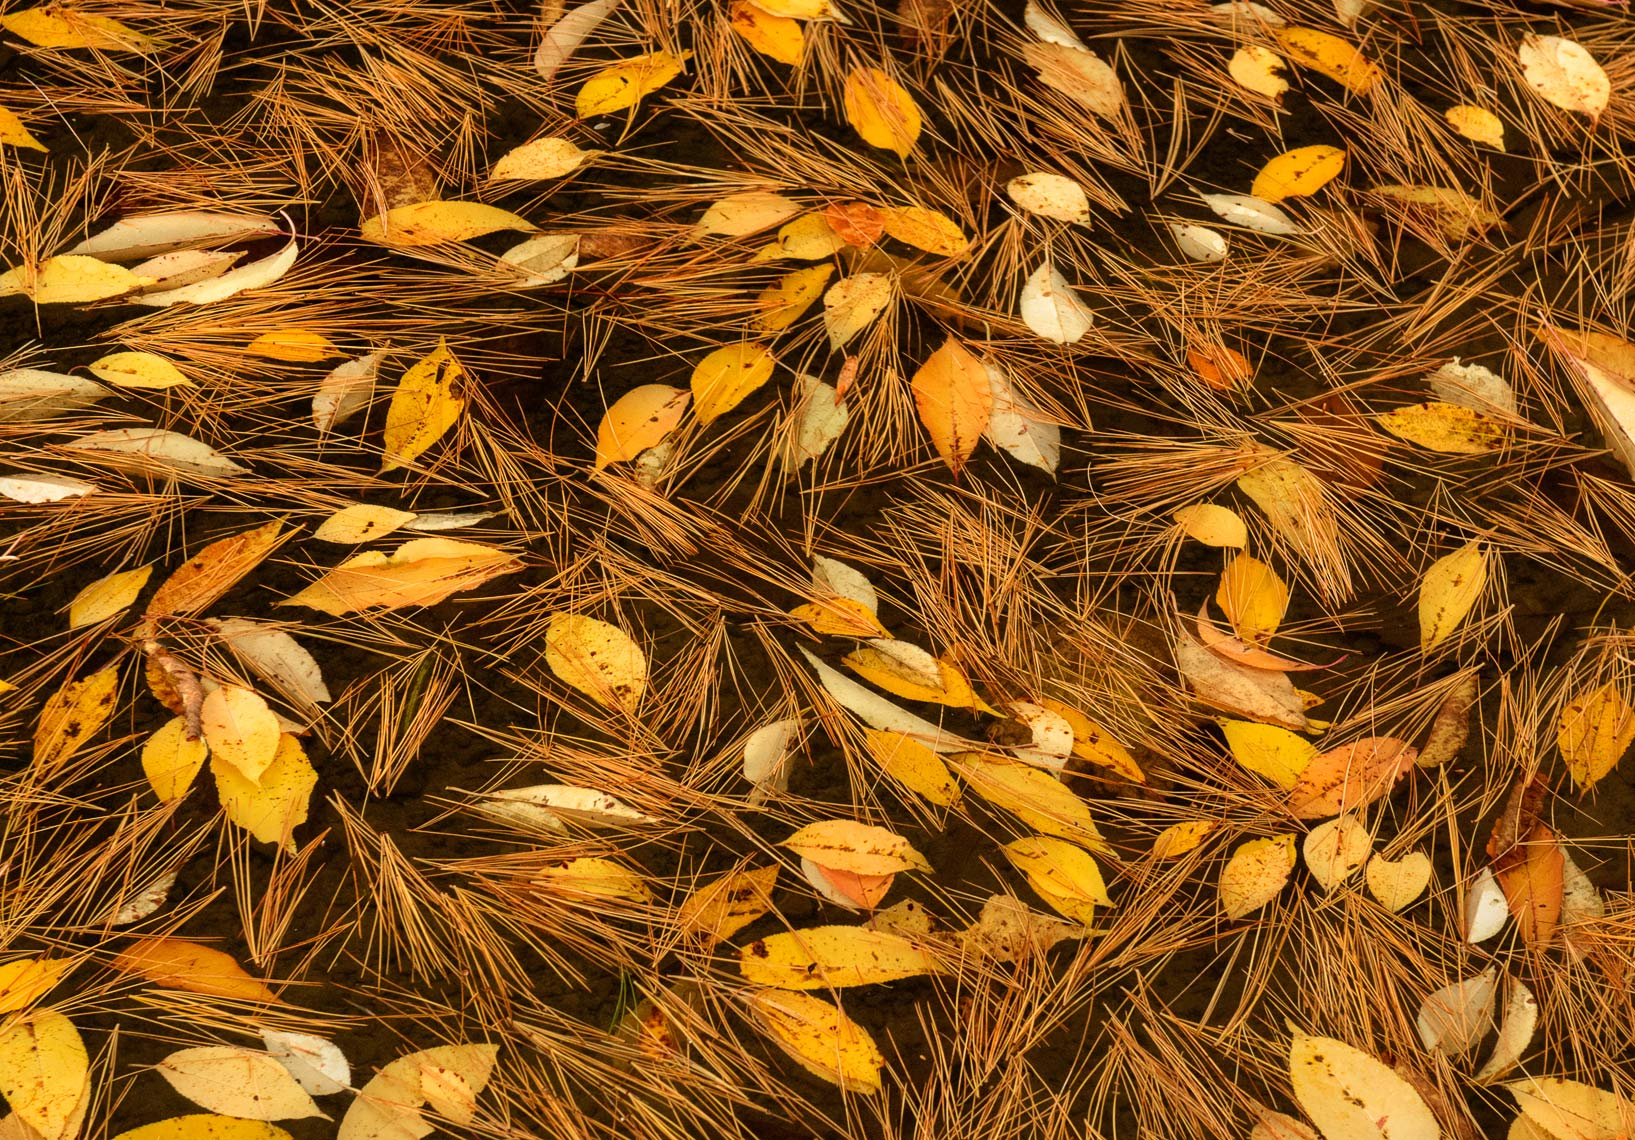 Pine needles and autumn leaves